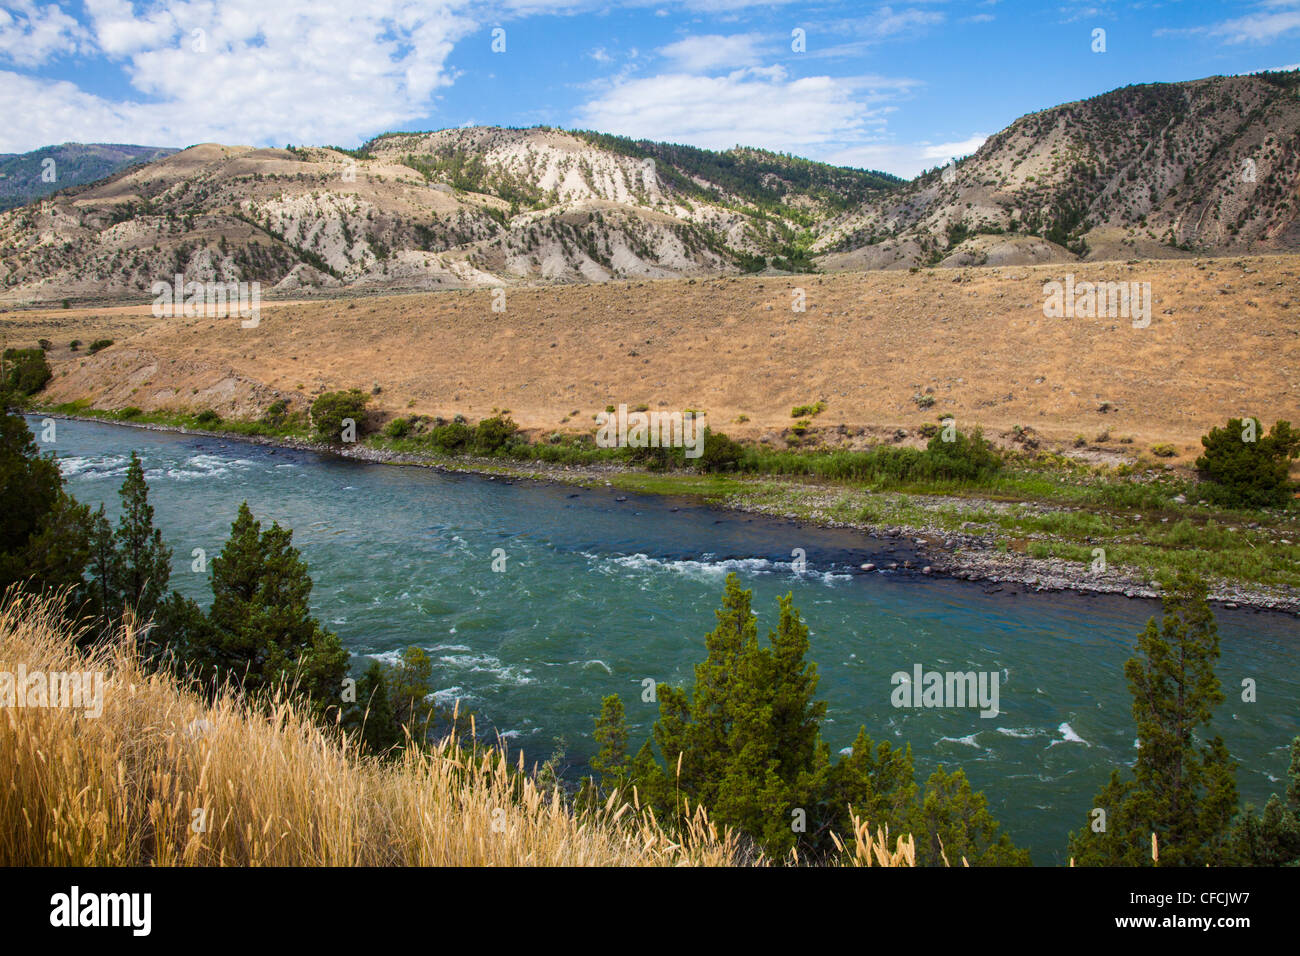 Yellowstone River along scenic highway US 89 - Stock Image